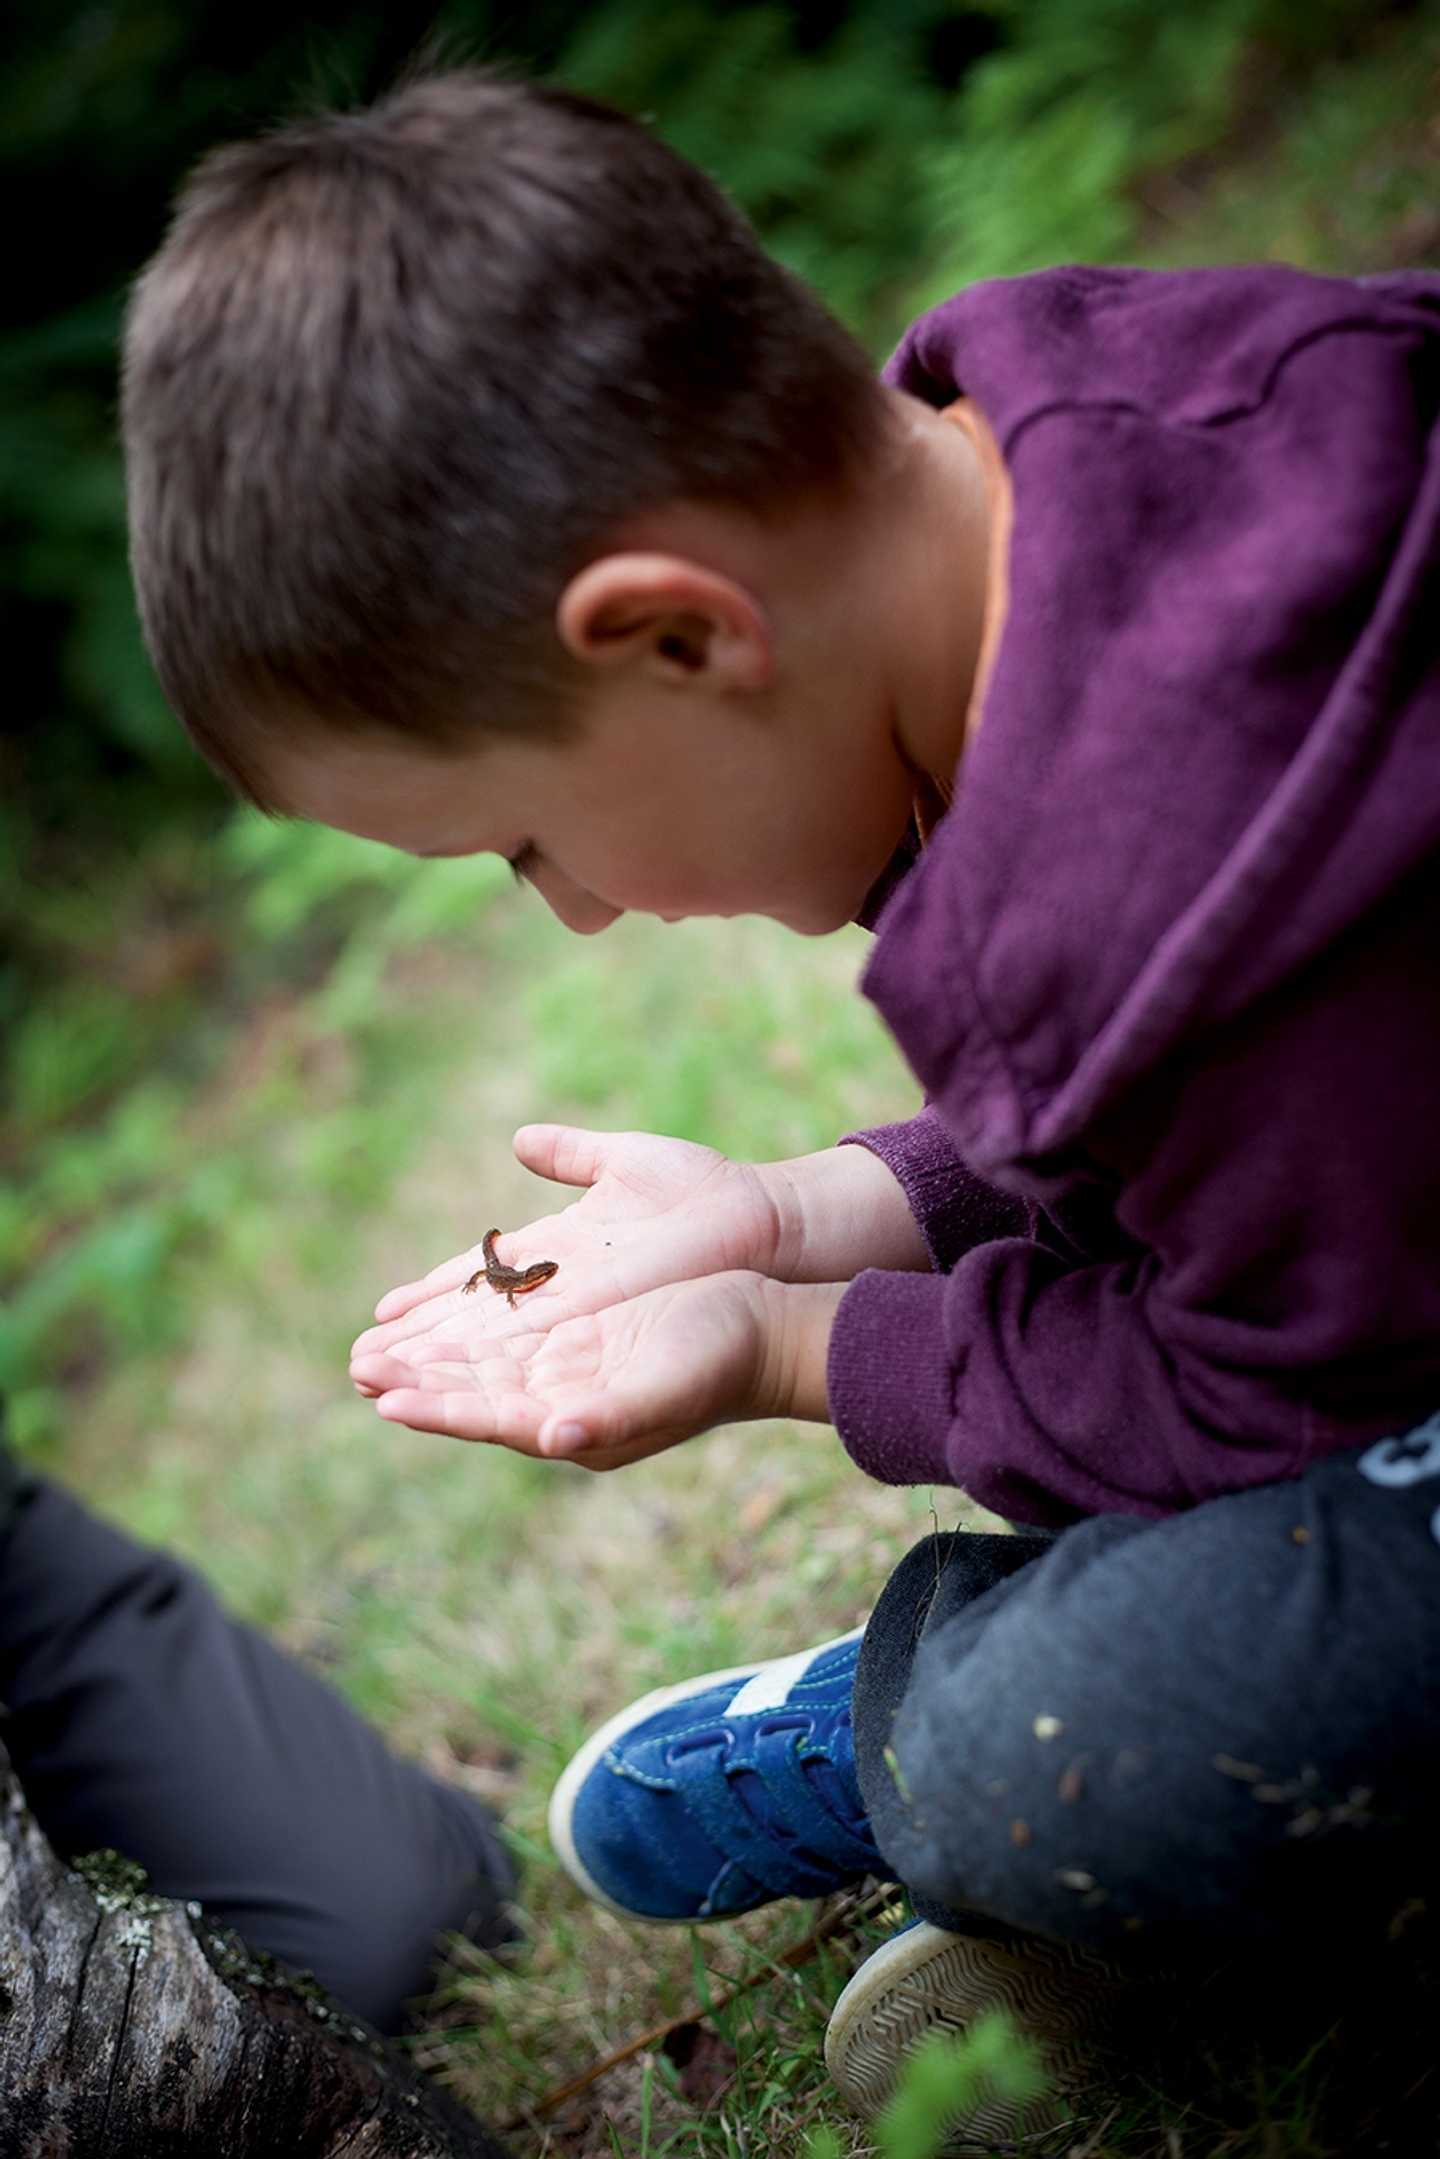 Child looking at bugs